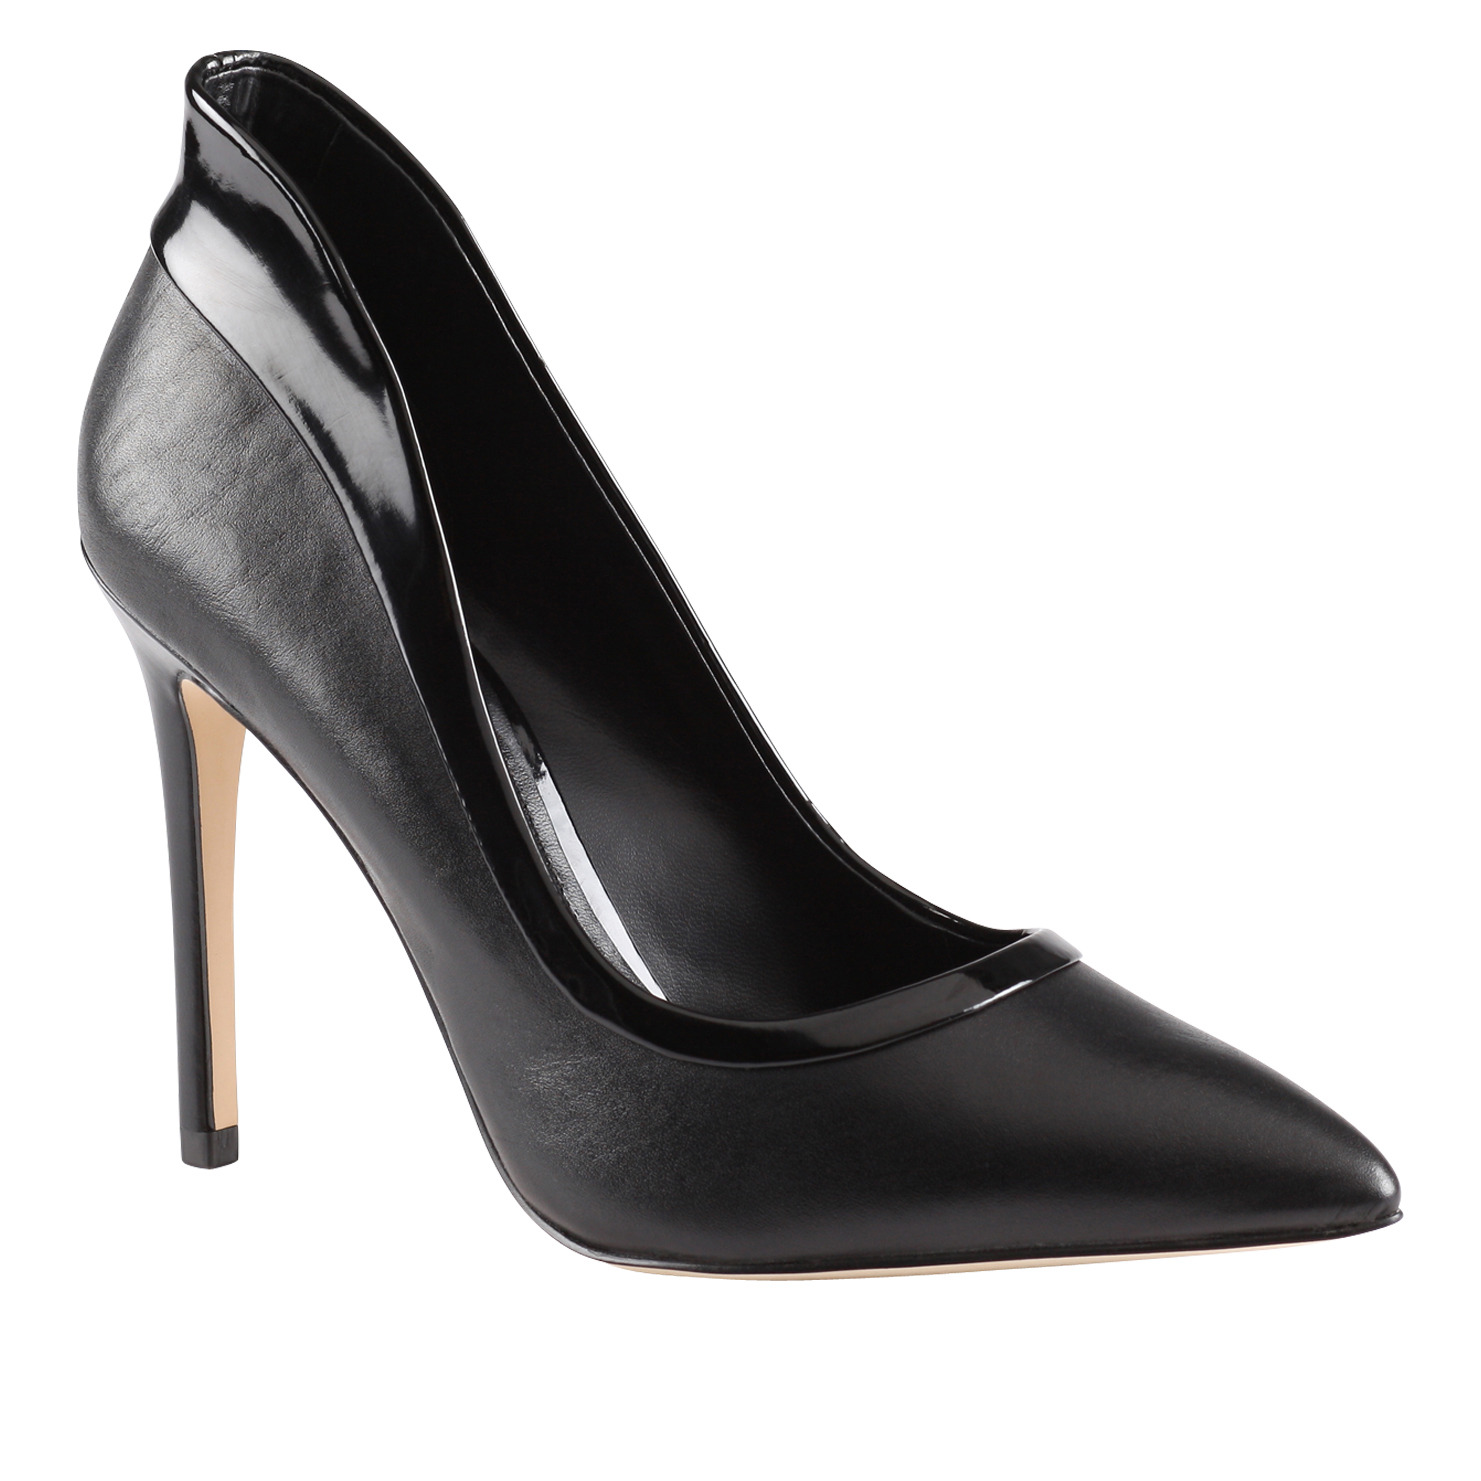 Women's Shoes Sale - Discover a wide array of products by the best Italian and international designers on YOOX. Fast delivery and secure payments.